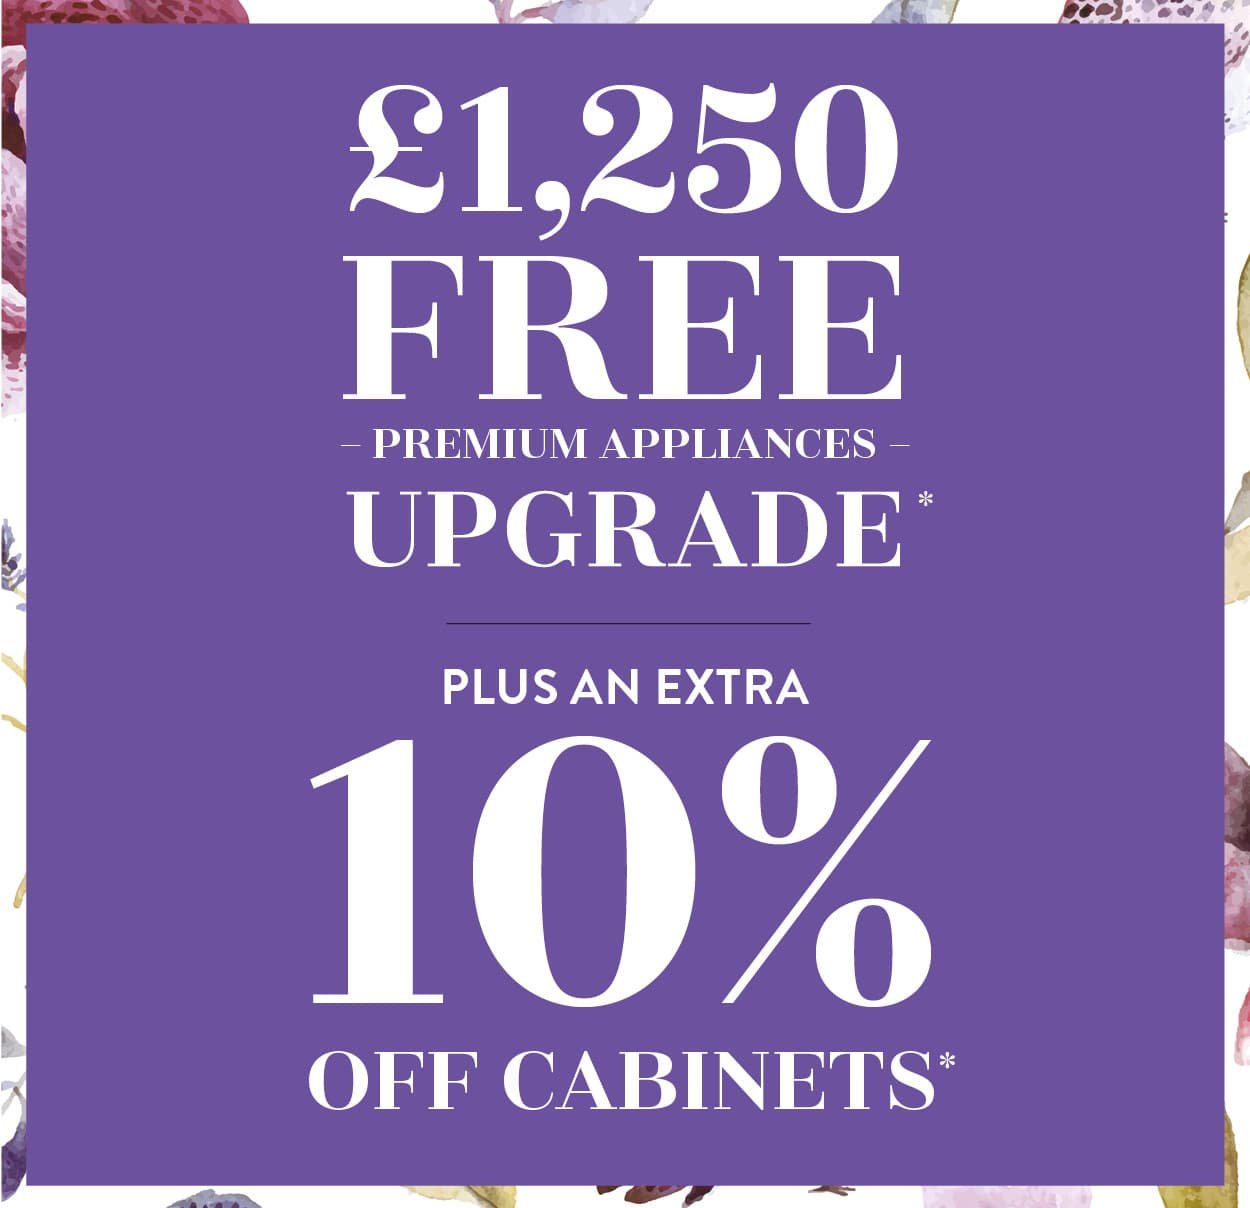 Kitchen Summer Sale Now On. Upto £1250 free appliances upgrade. Plus an extra 10% off cabinets.